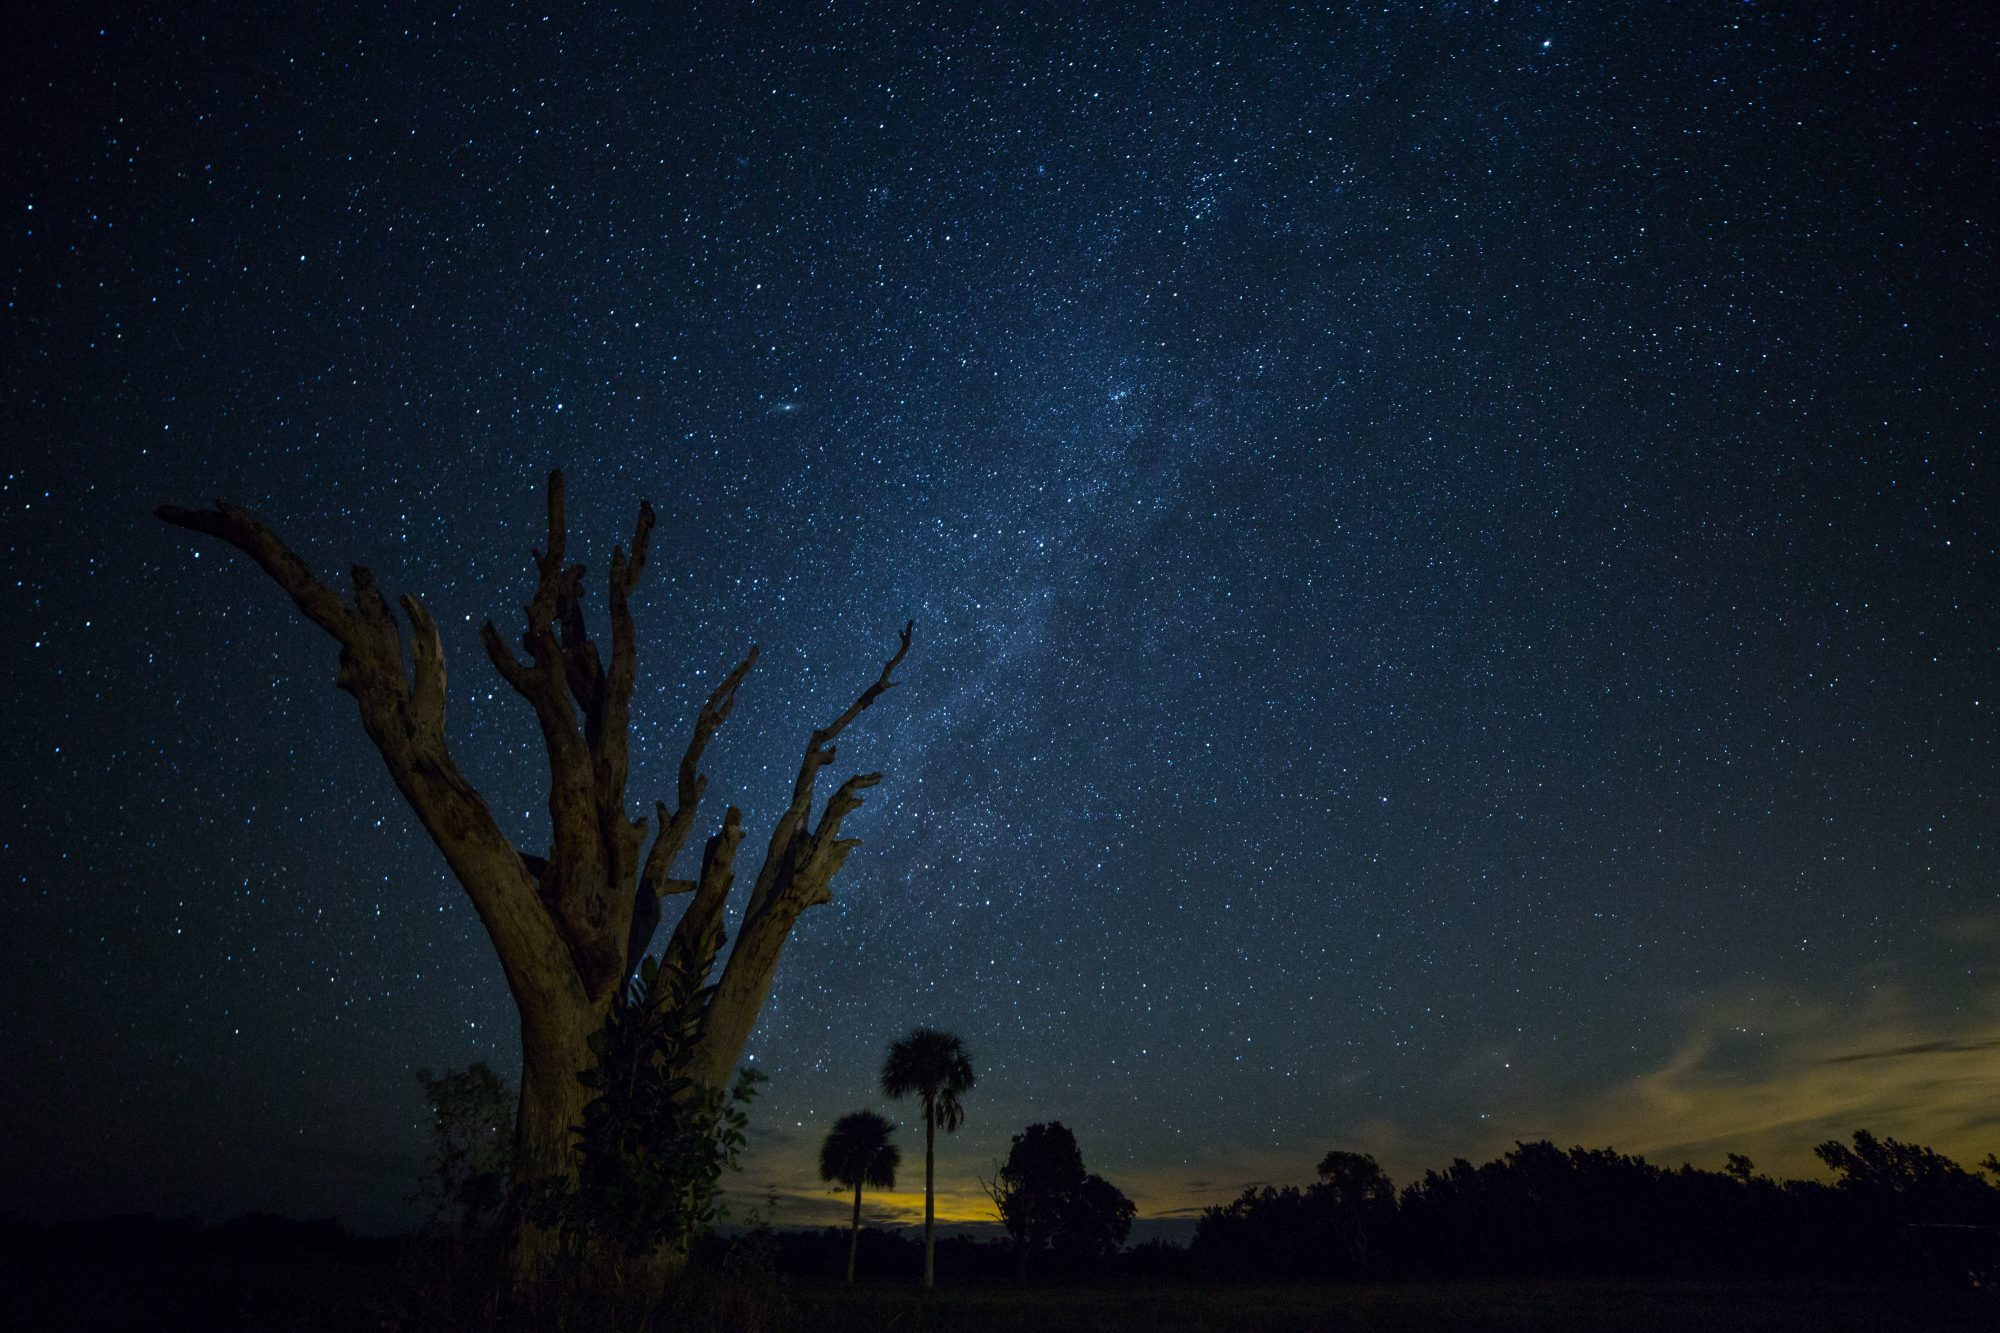 dead tree stands alone among the grassy wetlands surrounded by a starry sky in Florida